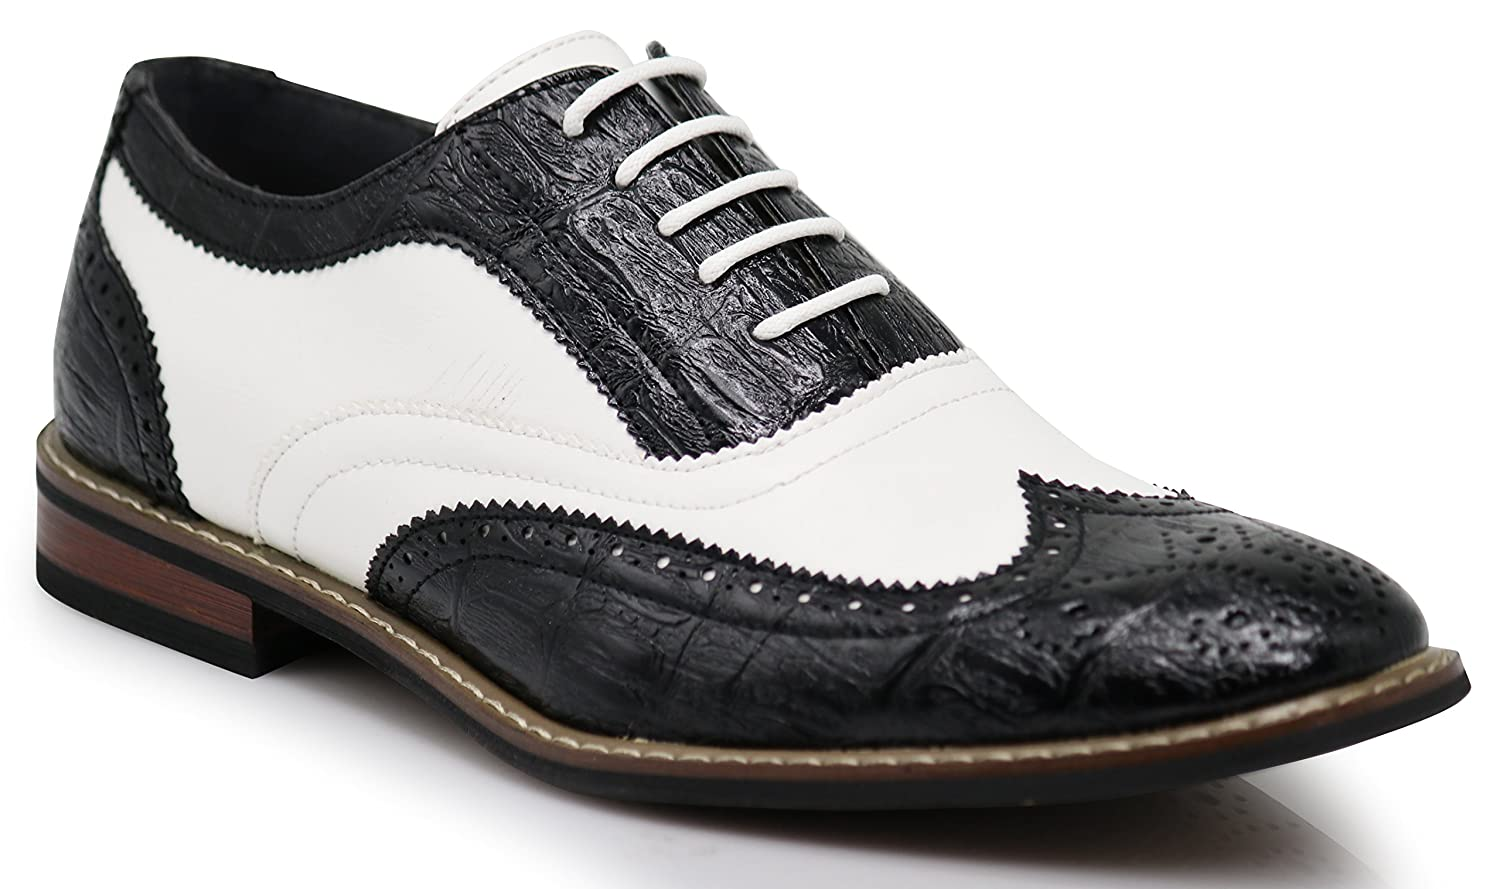 60s Mens Shoes | 70s Mens shoes – Platforms, Boots Mens Dress Oxfords Shoes Italy Modern Designer Wingtip Captoe 2 Tone Lace up Shoes $31.98 AT vintagedancer.com